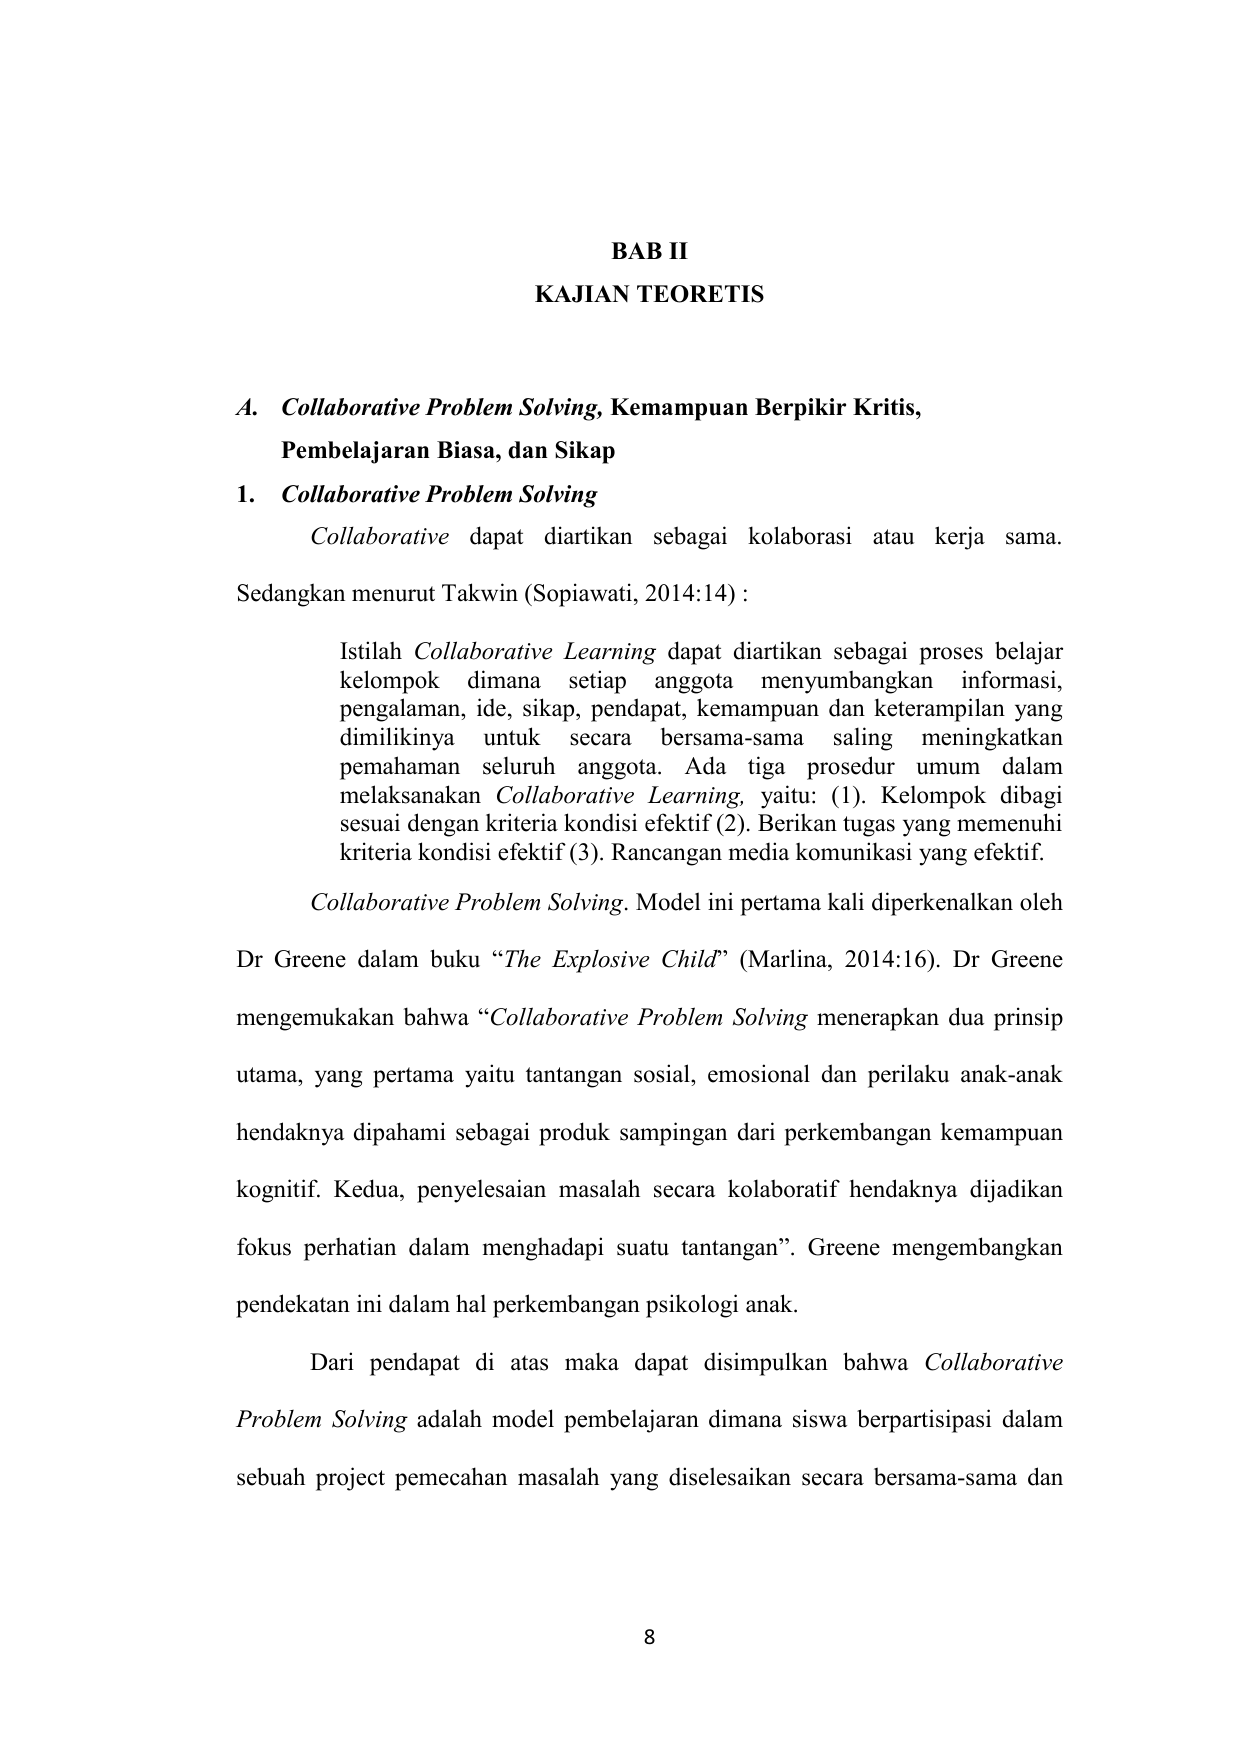 pengertian model pembelajaran collaborative problem solving